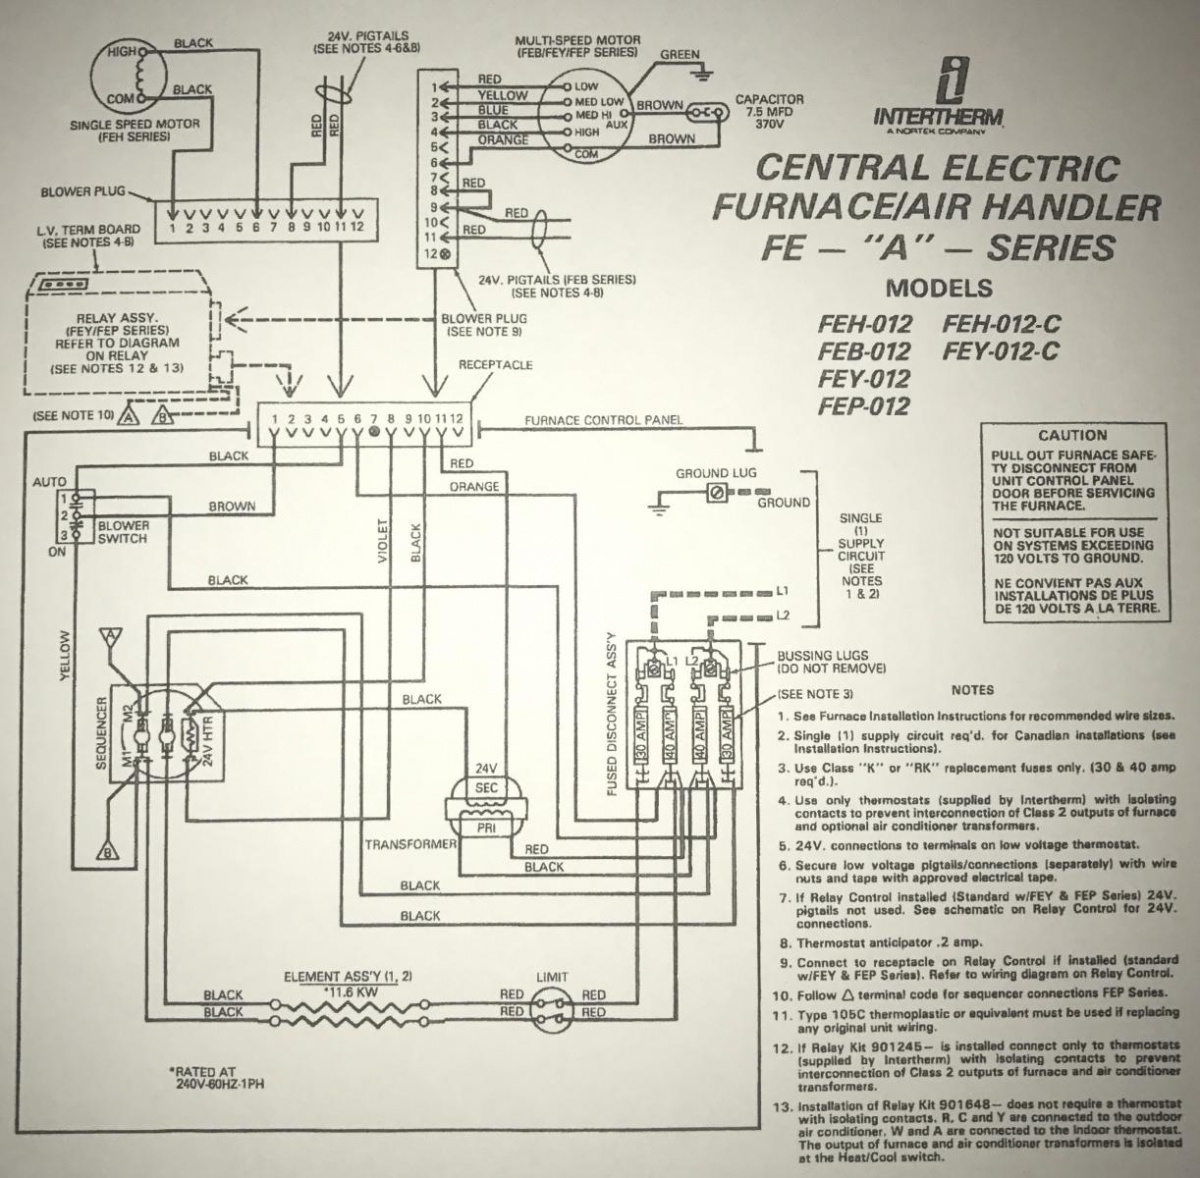 hight resolution of  1991 intertherm nordyne furnace with added ac split system img 1607 1504804878471 jpg